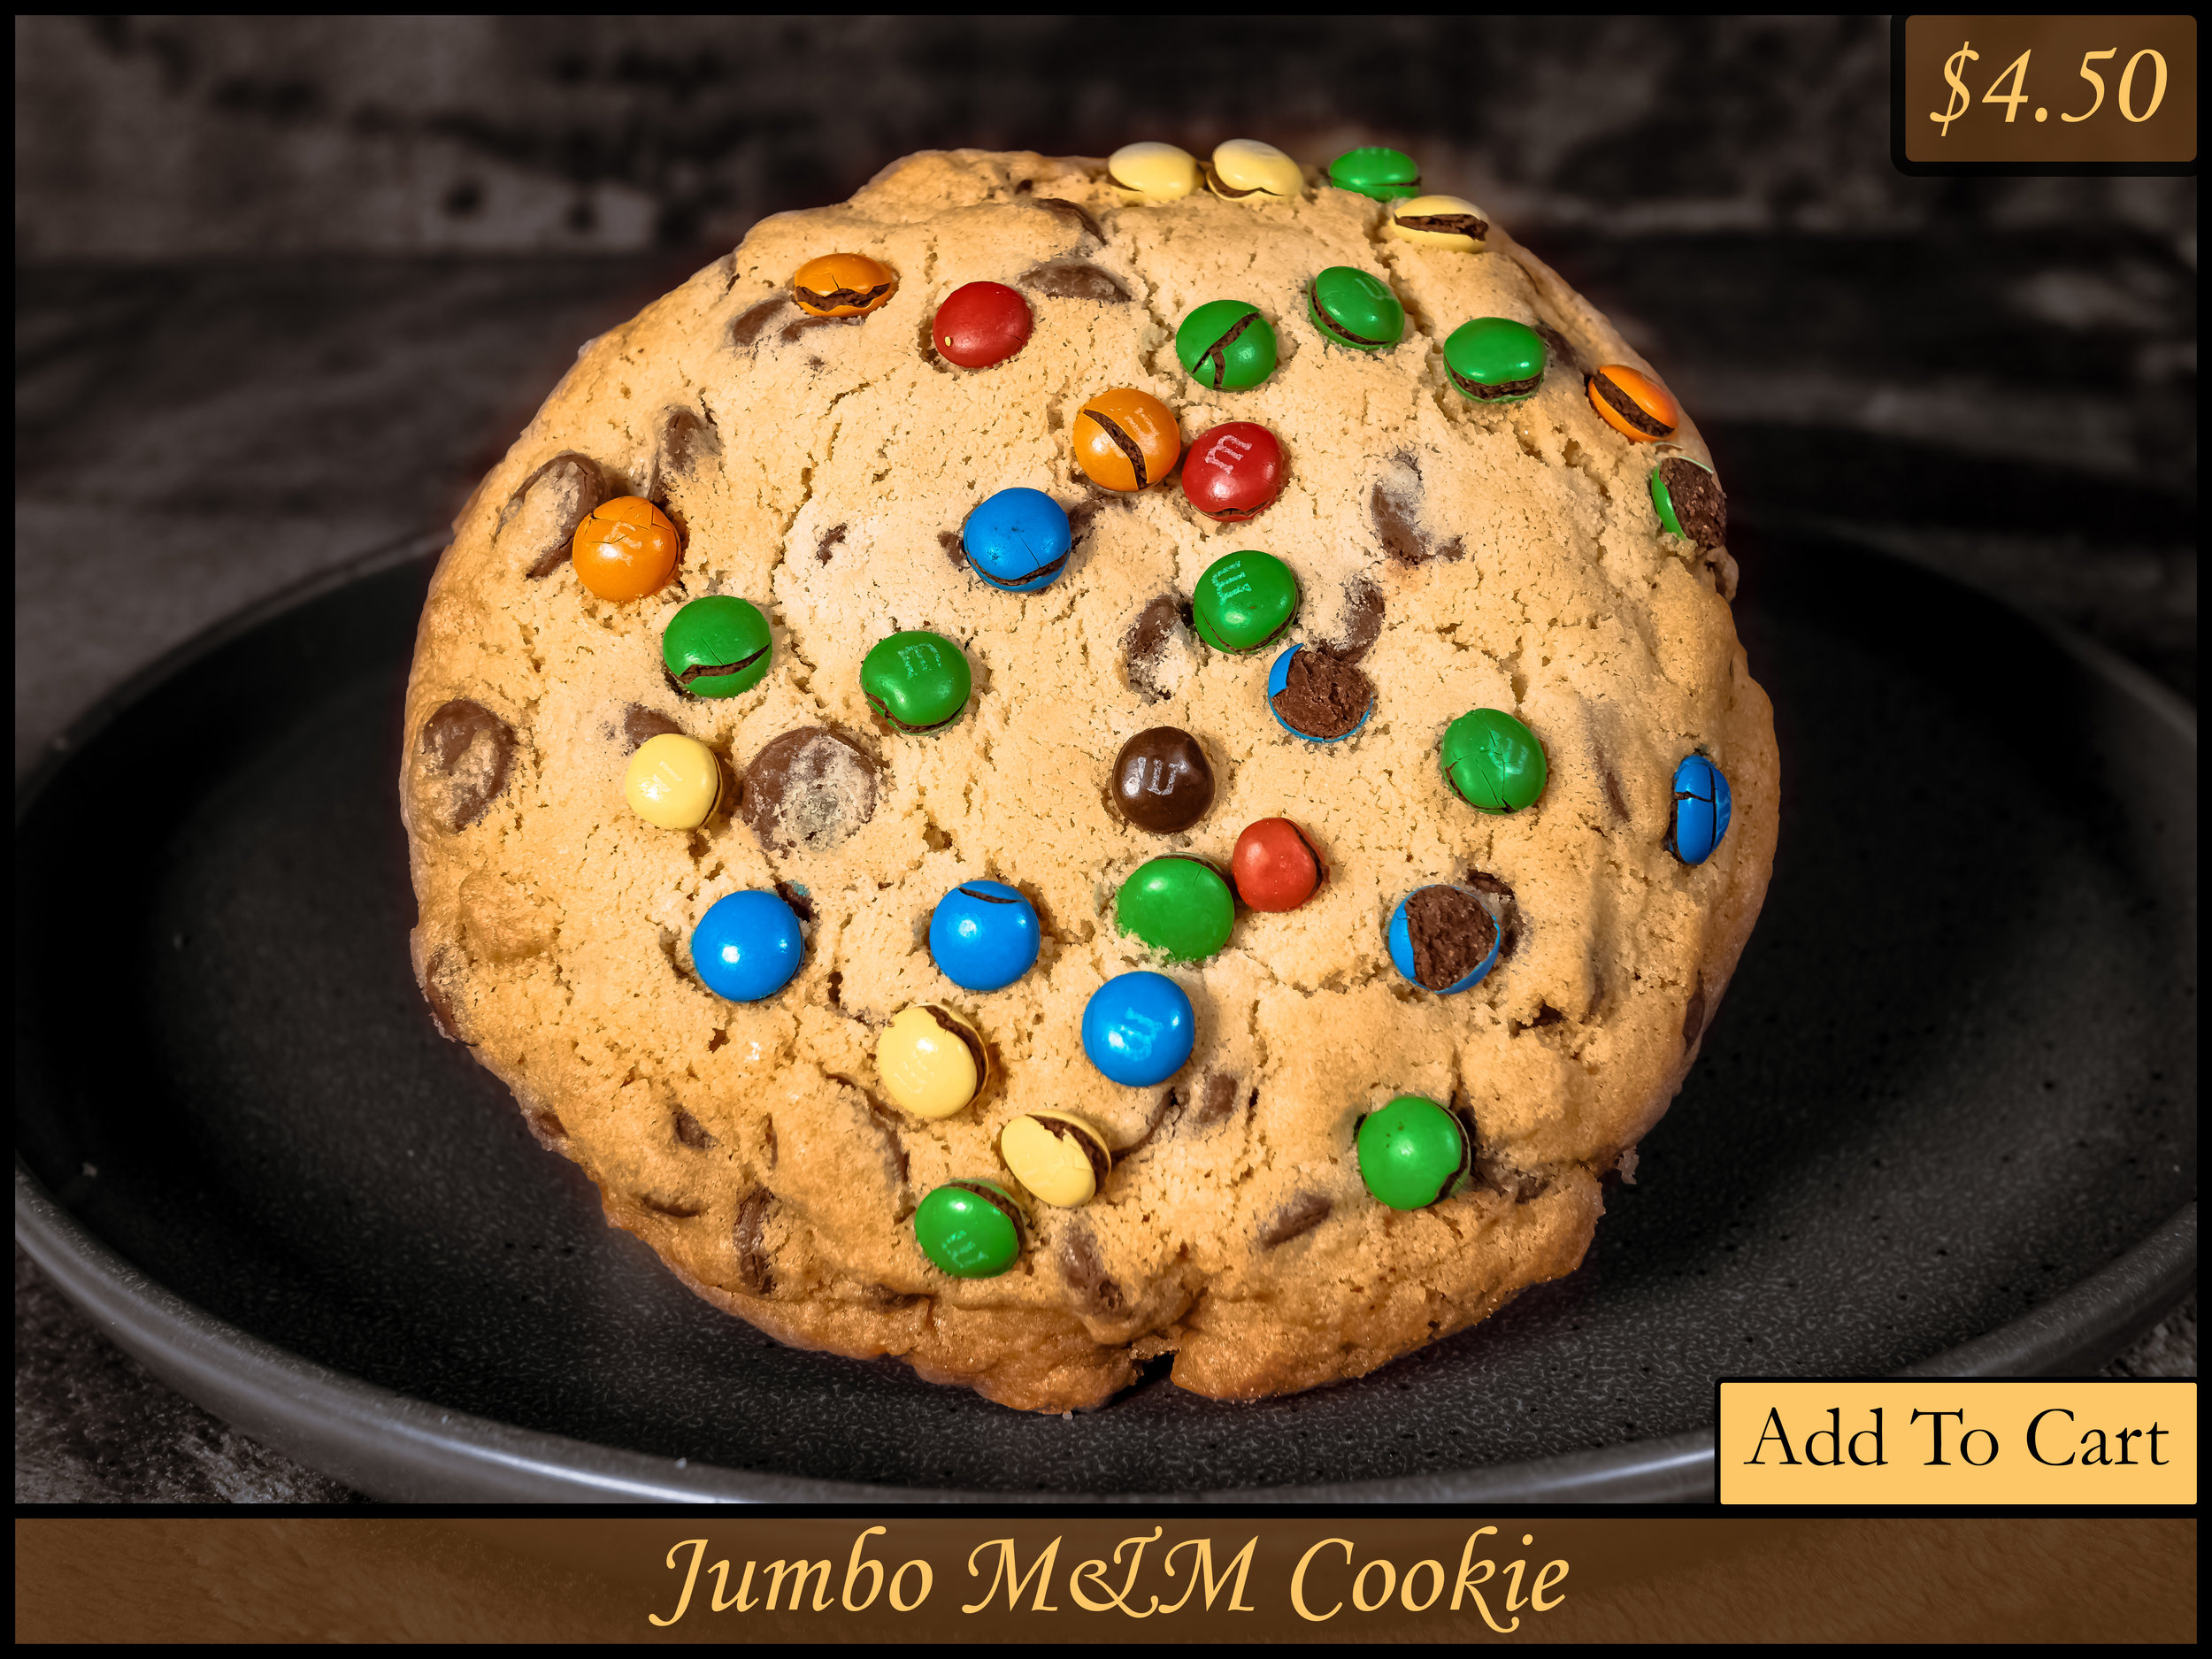 jumbo M&M Stack price.jpg